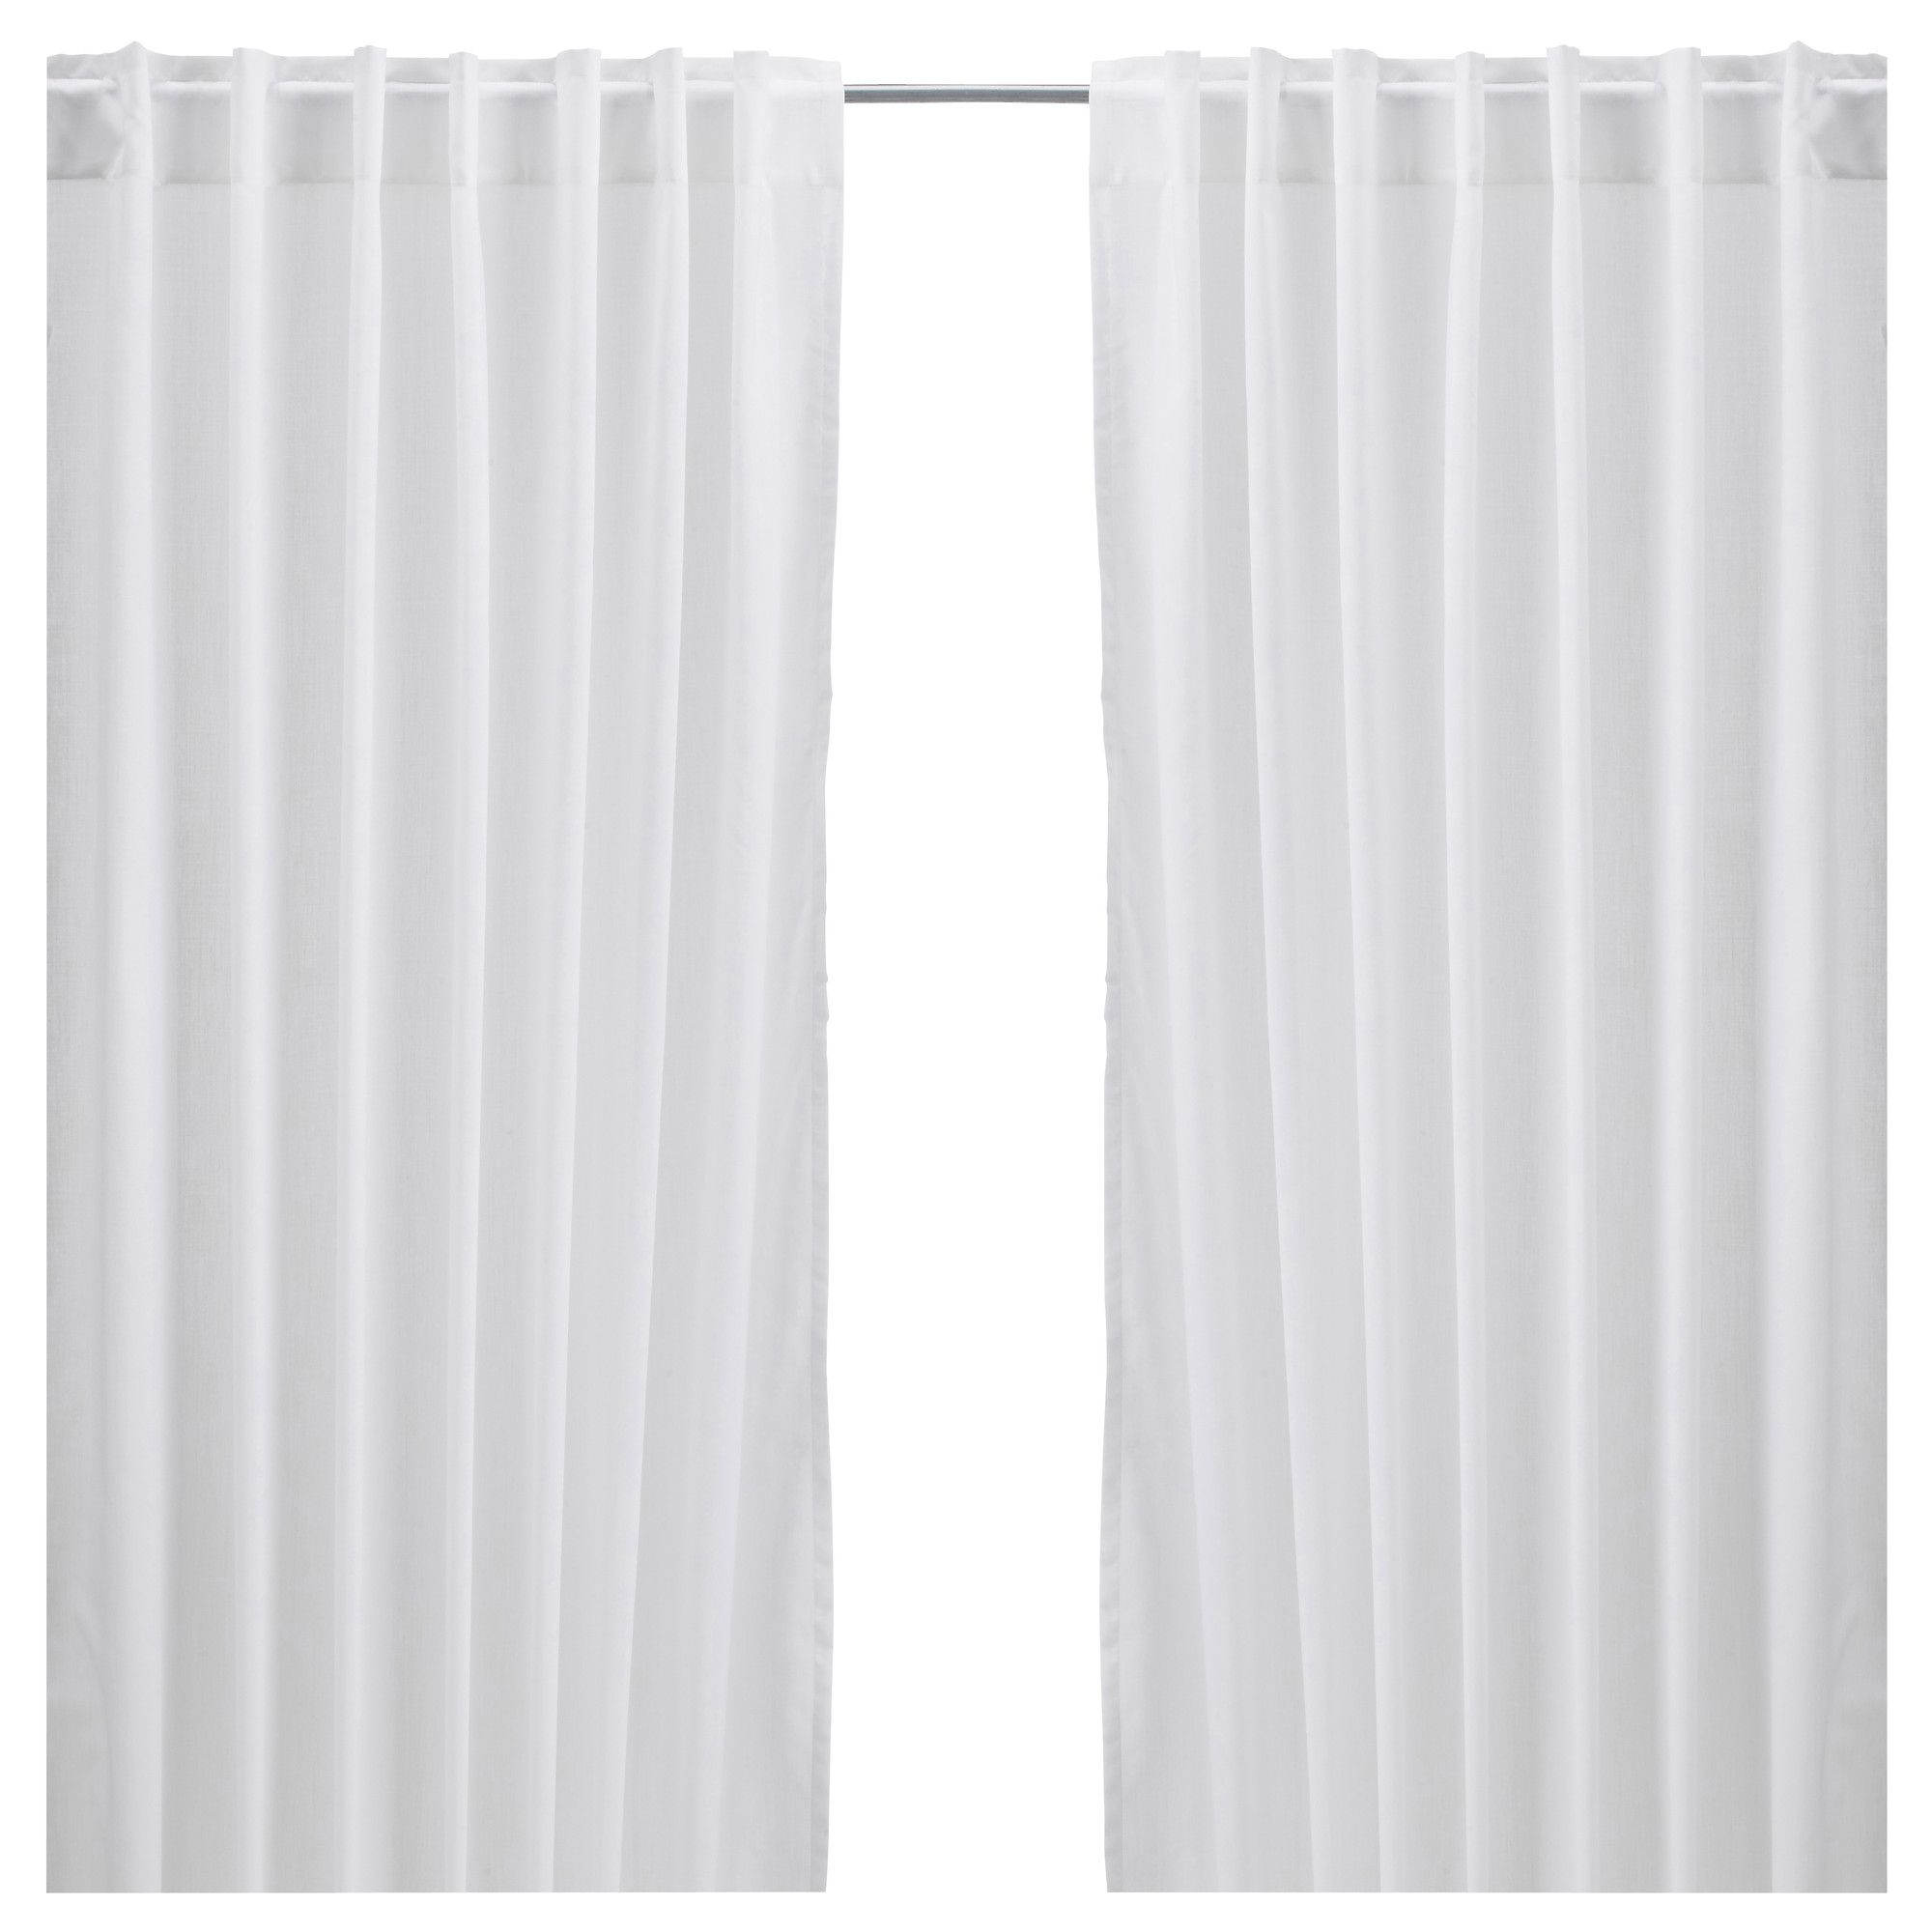 Vivan curtains 1 pair white ikea home pinterest for White curtains ikea